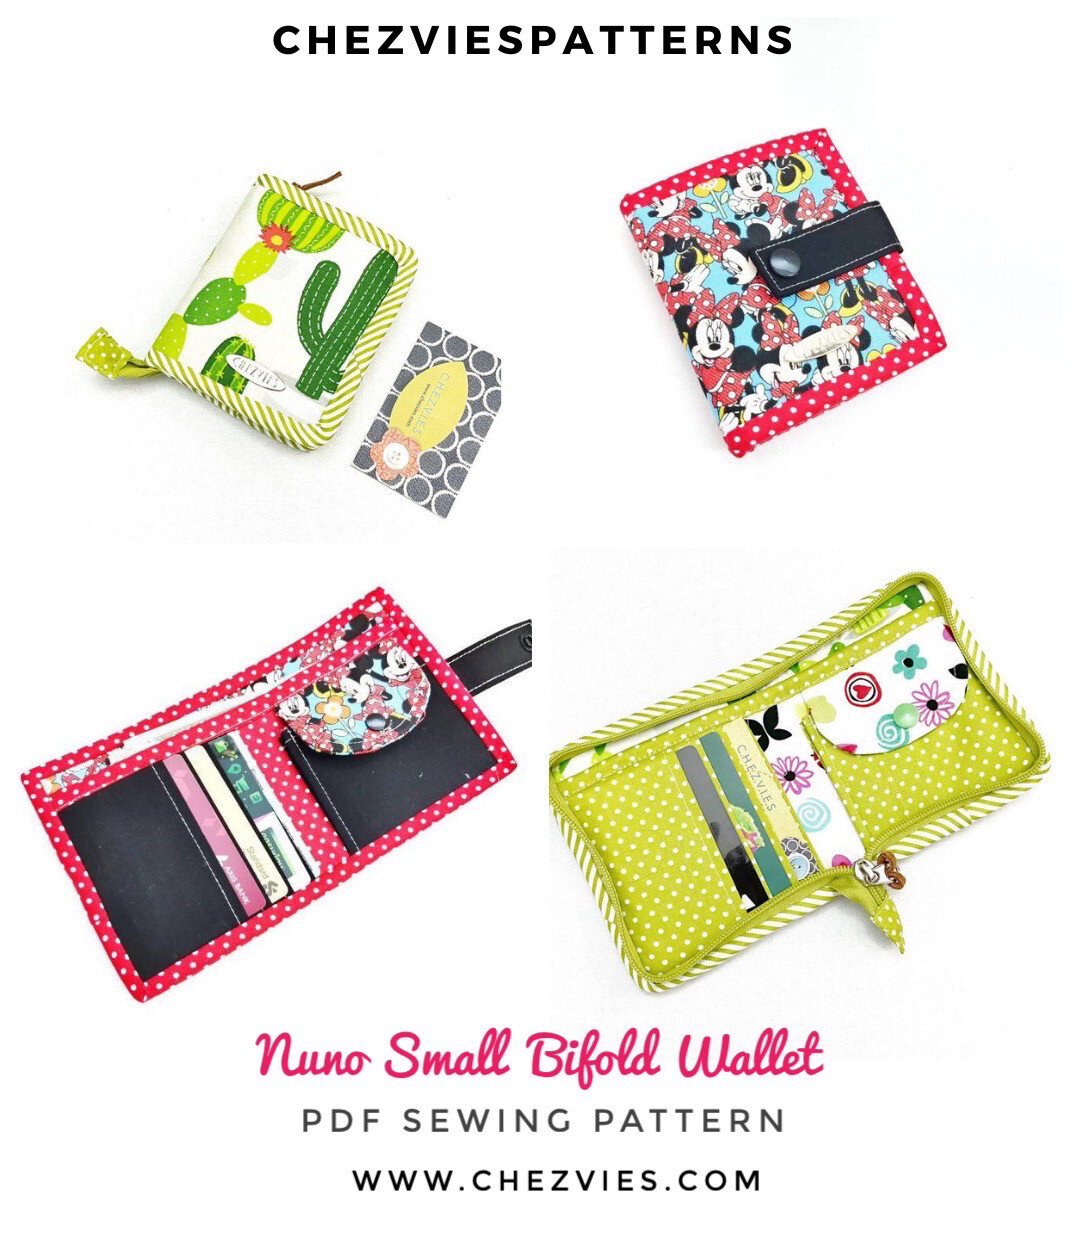 Nuno Wallet Sewing Pattern - Small Wallet Pattern